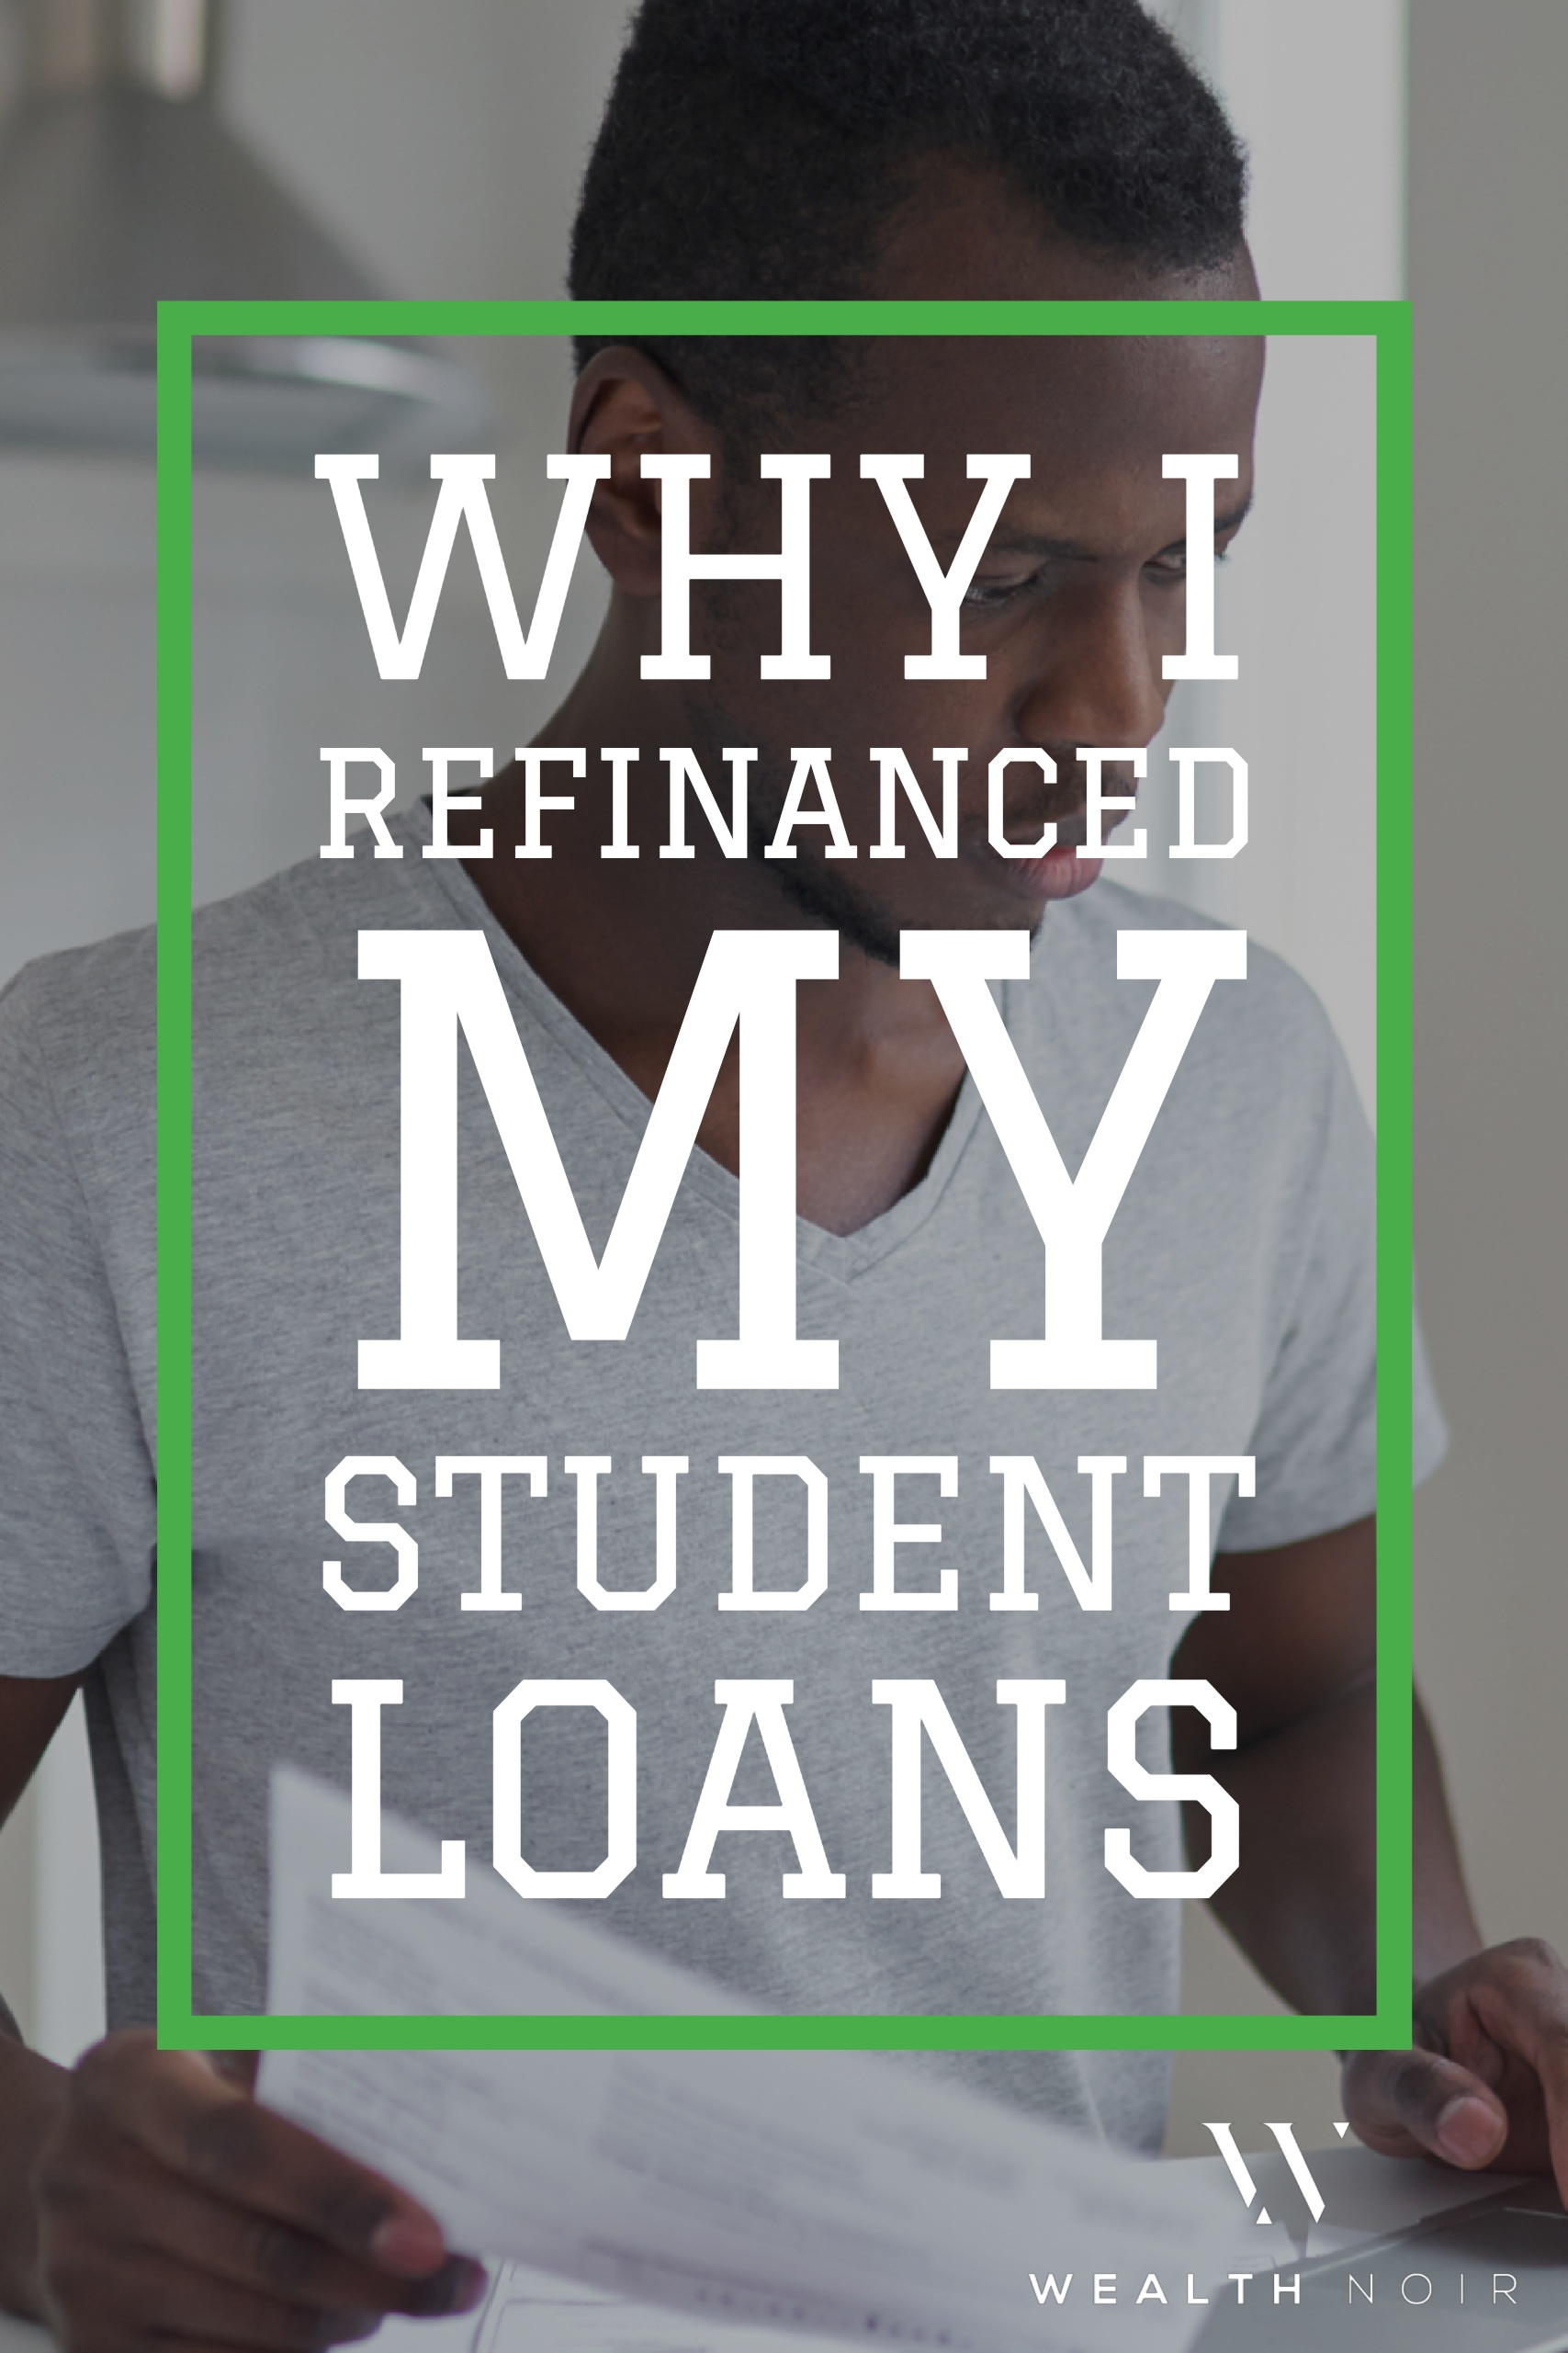 I was just thinking asking myself about refinancing student loans and came across this great article.